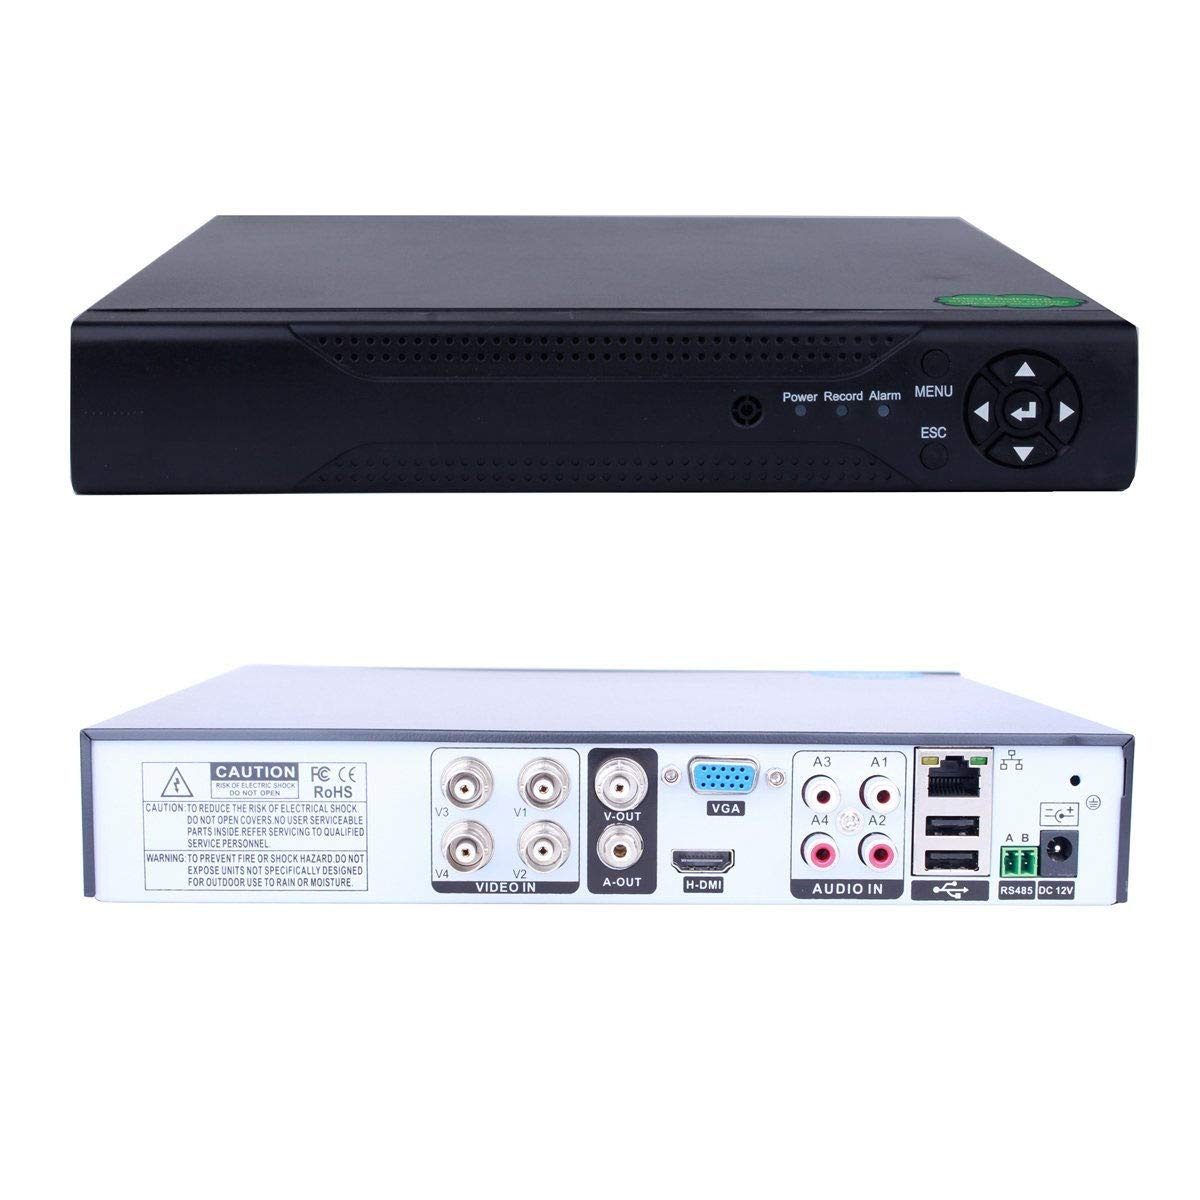 【今日の超目玉】 FidgetGear 6in1 4CH H.264 HDMI DVR/NVR/AHD/TVI/CVI/XVI IP Security CCTV Camera DVR Recorde   B07Q9M3WYD, ファーストコンタクト 445bb219